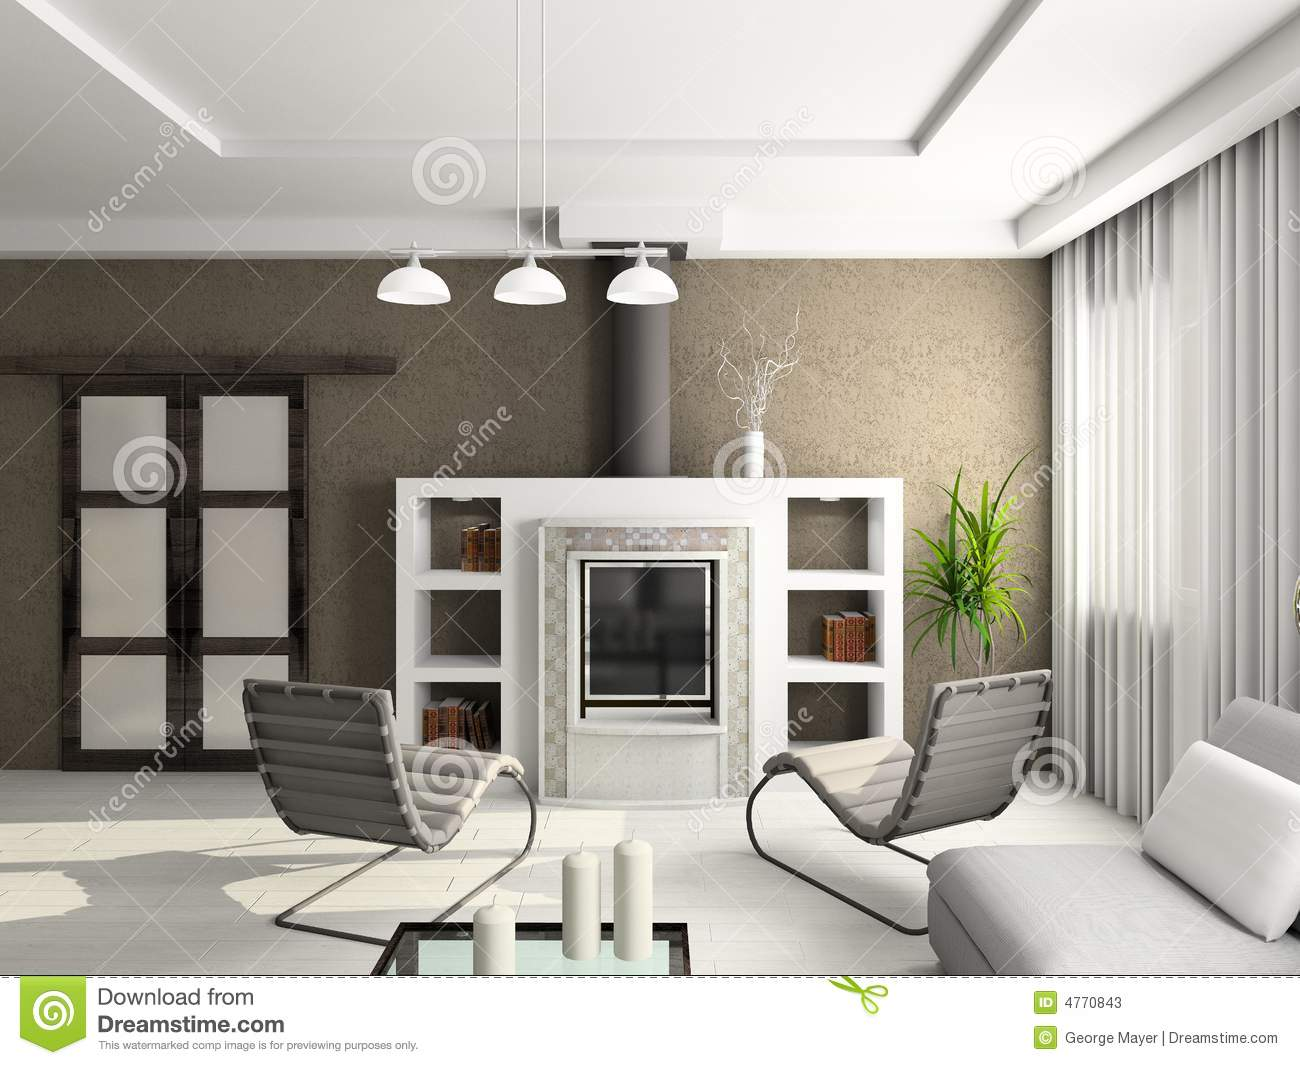 Superb White And Black Living Room Ideas #4: 3d-render-modern-interior-living-room-4770843.jpg